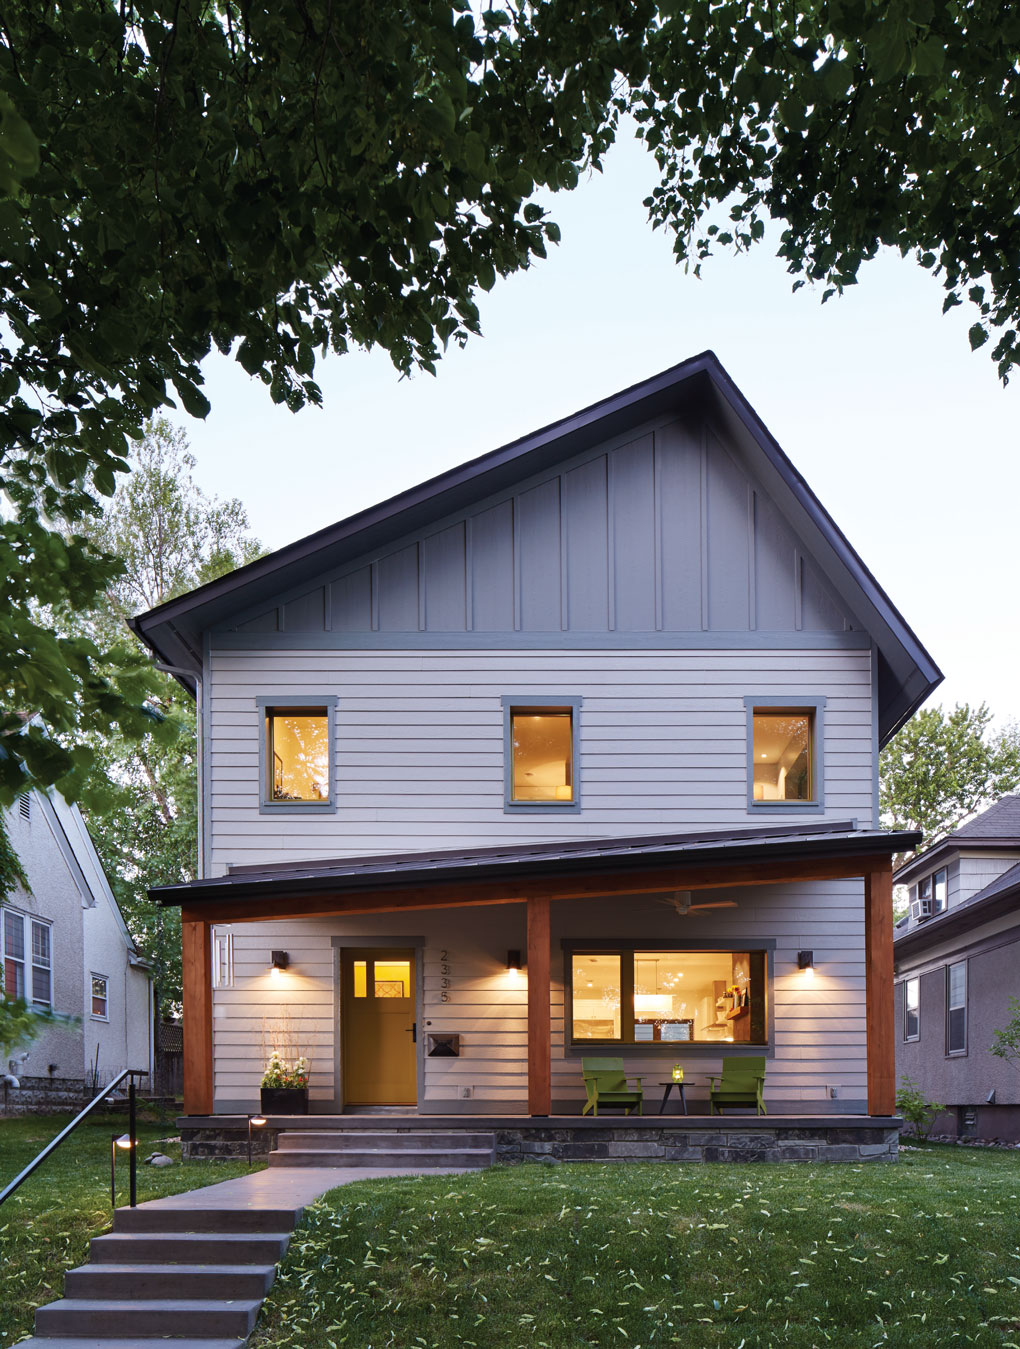 Exterior of Passive House